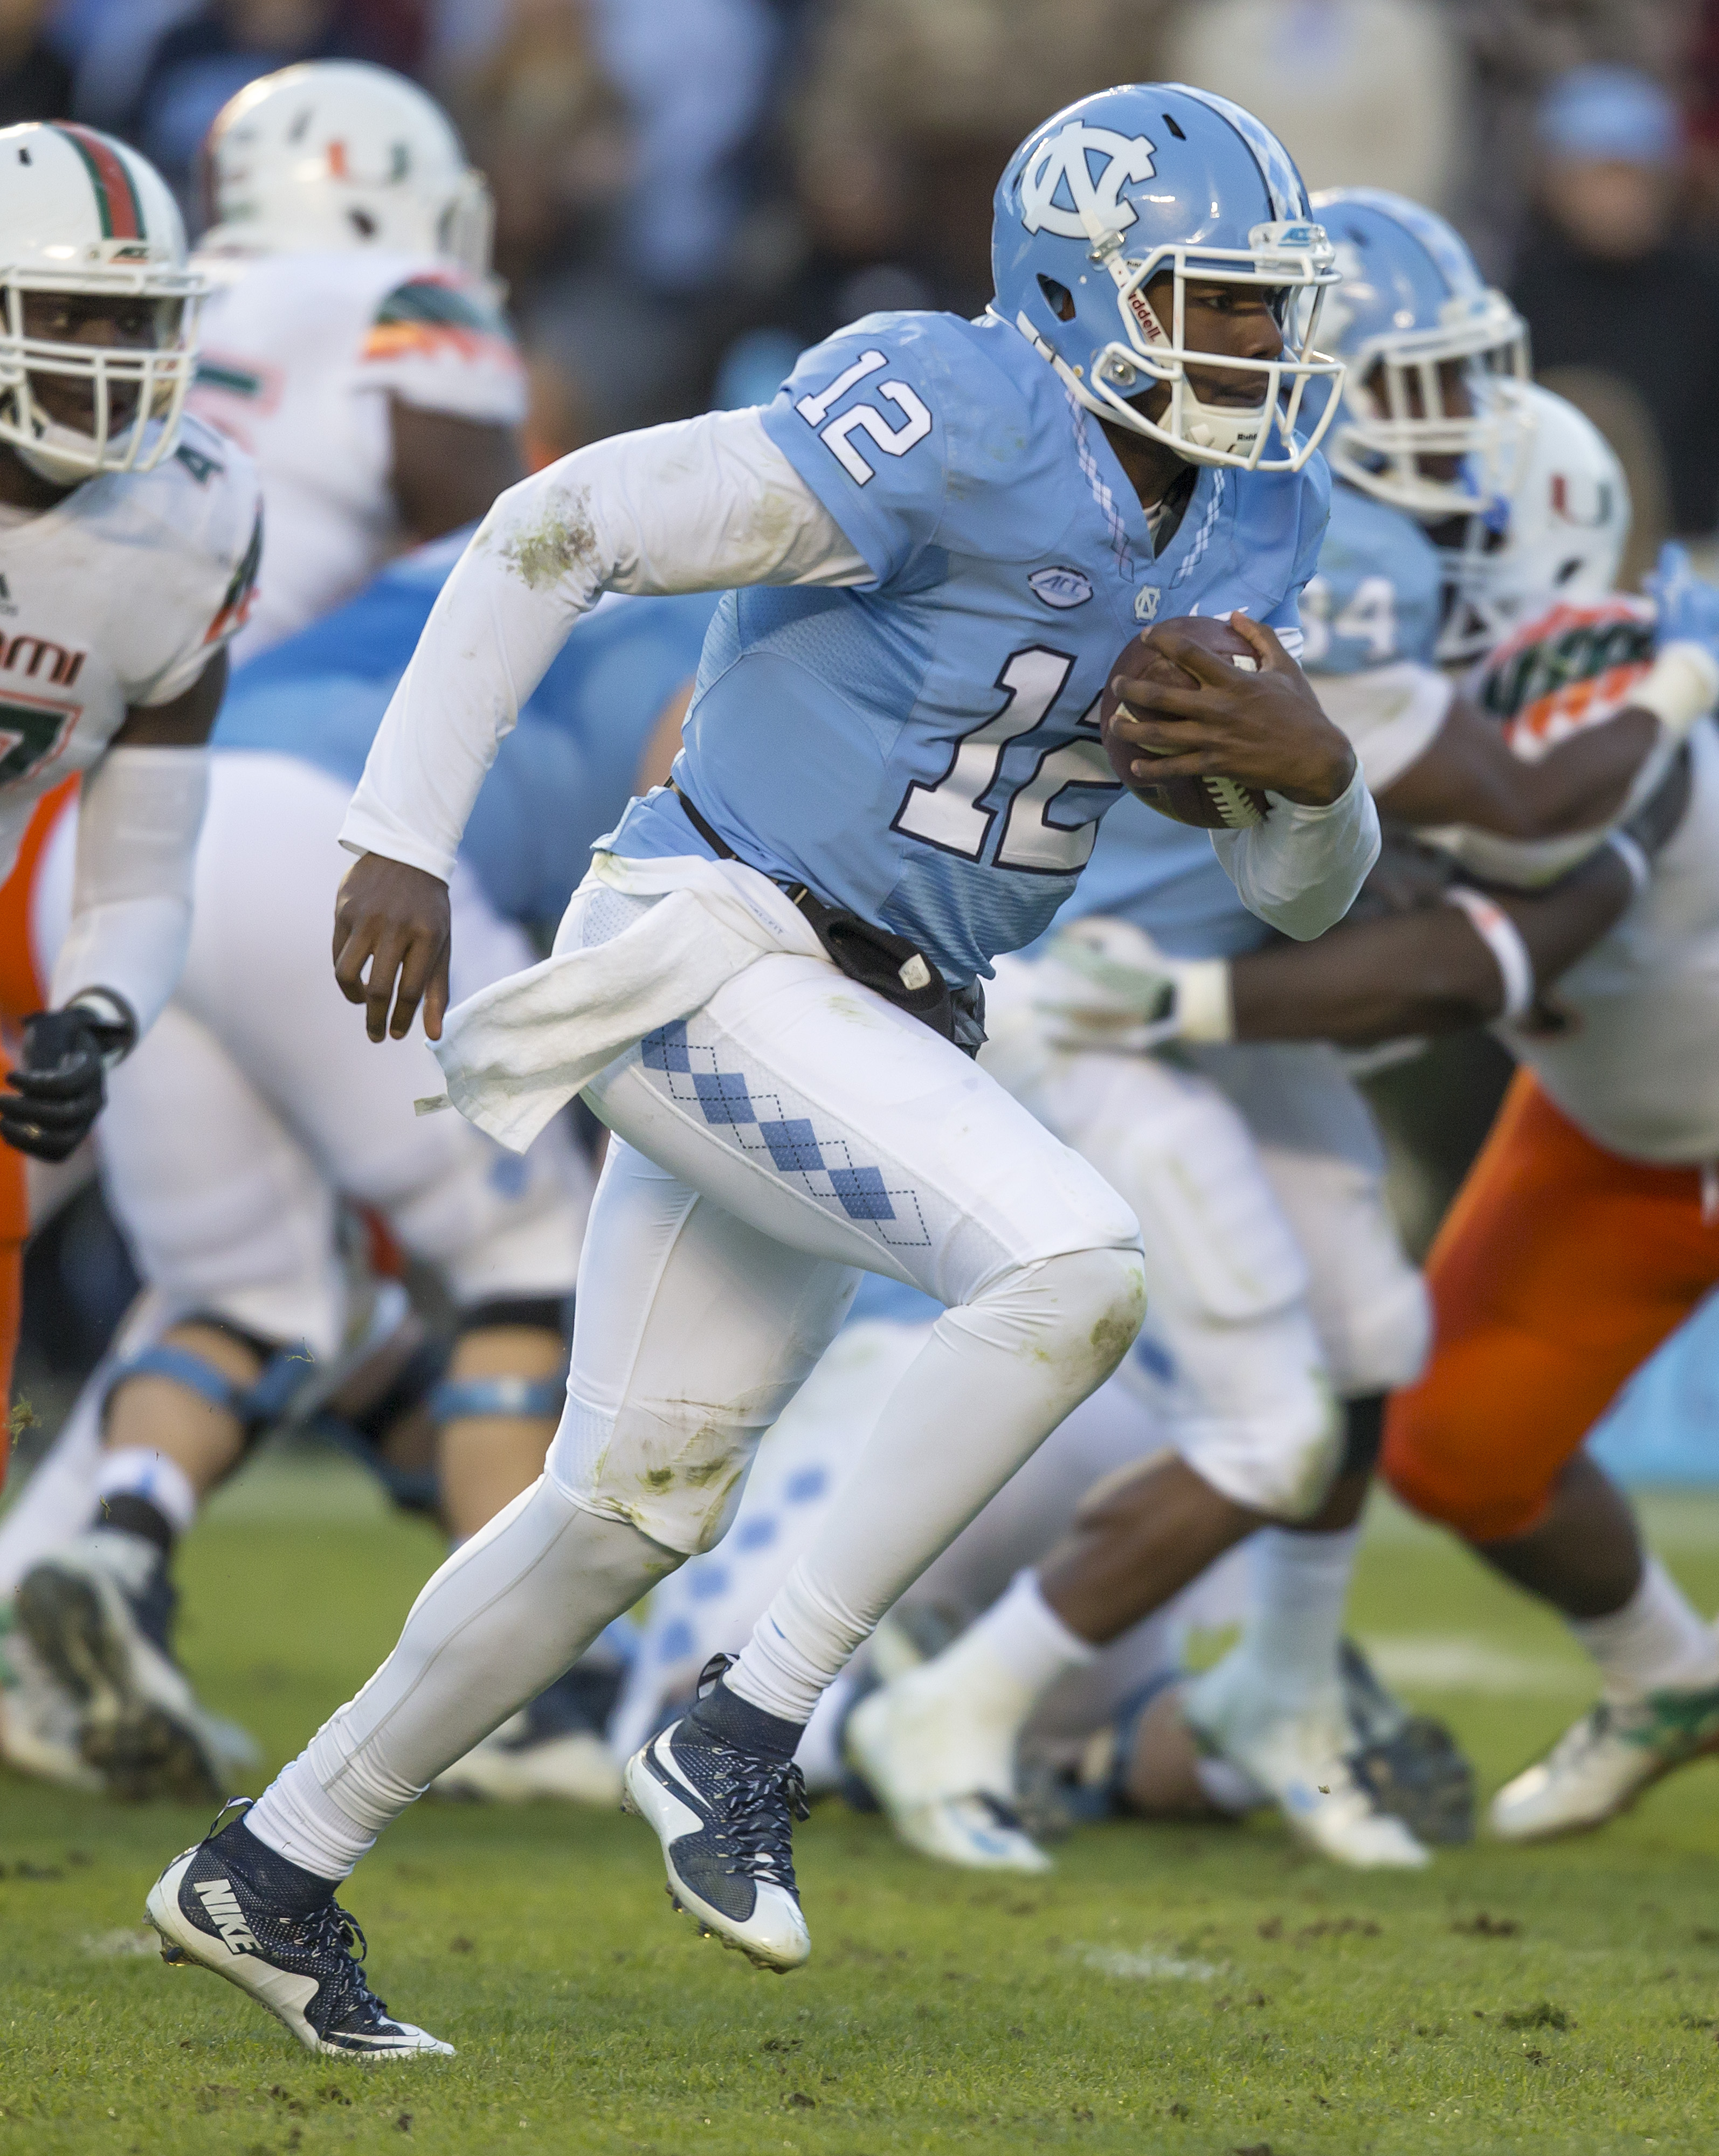 North Carolina quarterback Marquise Williams runs for his second touchdown against Miami during the first half of an NCAA college football game, in Chapel Hill, N.C., Saturday, Nov. 14, 2015. (AP Photo/Rob Brown)